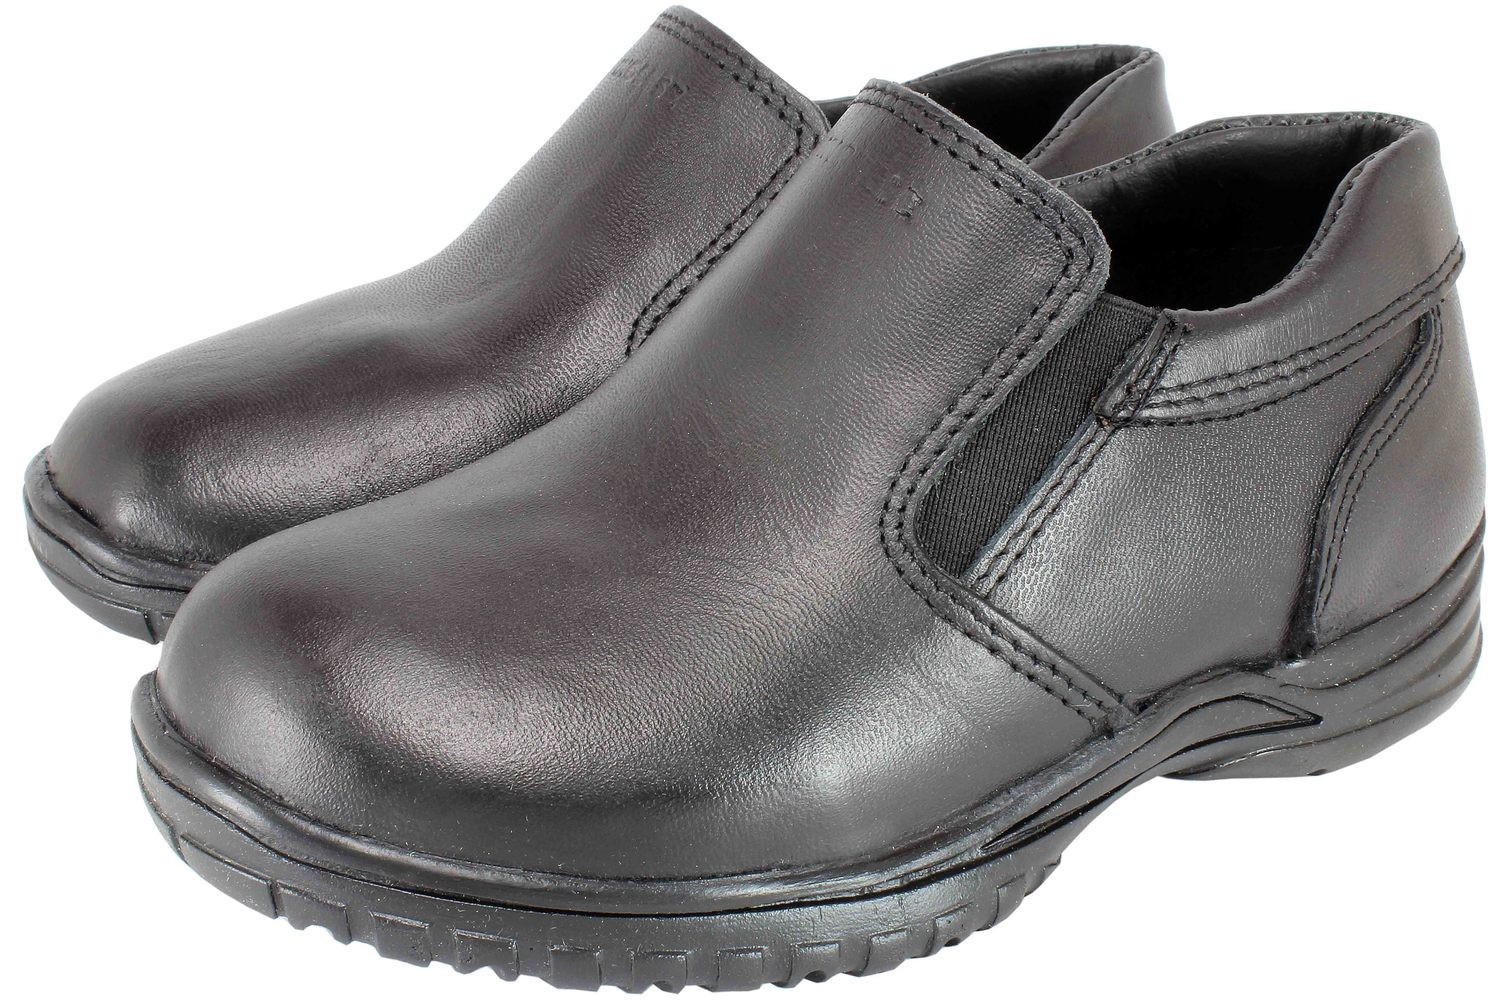 Boys Shoes Genuine Leather Black - SUGGESTED RETAIL PRICE $30.00 - WHOLESALE PRICE $6 - Minimum purchase 10 pairs